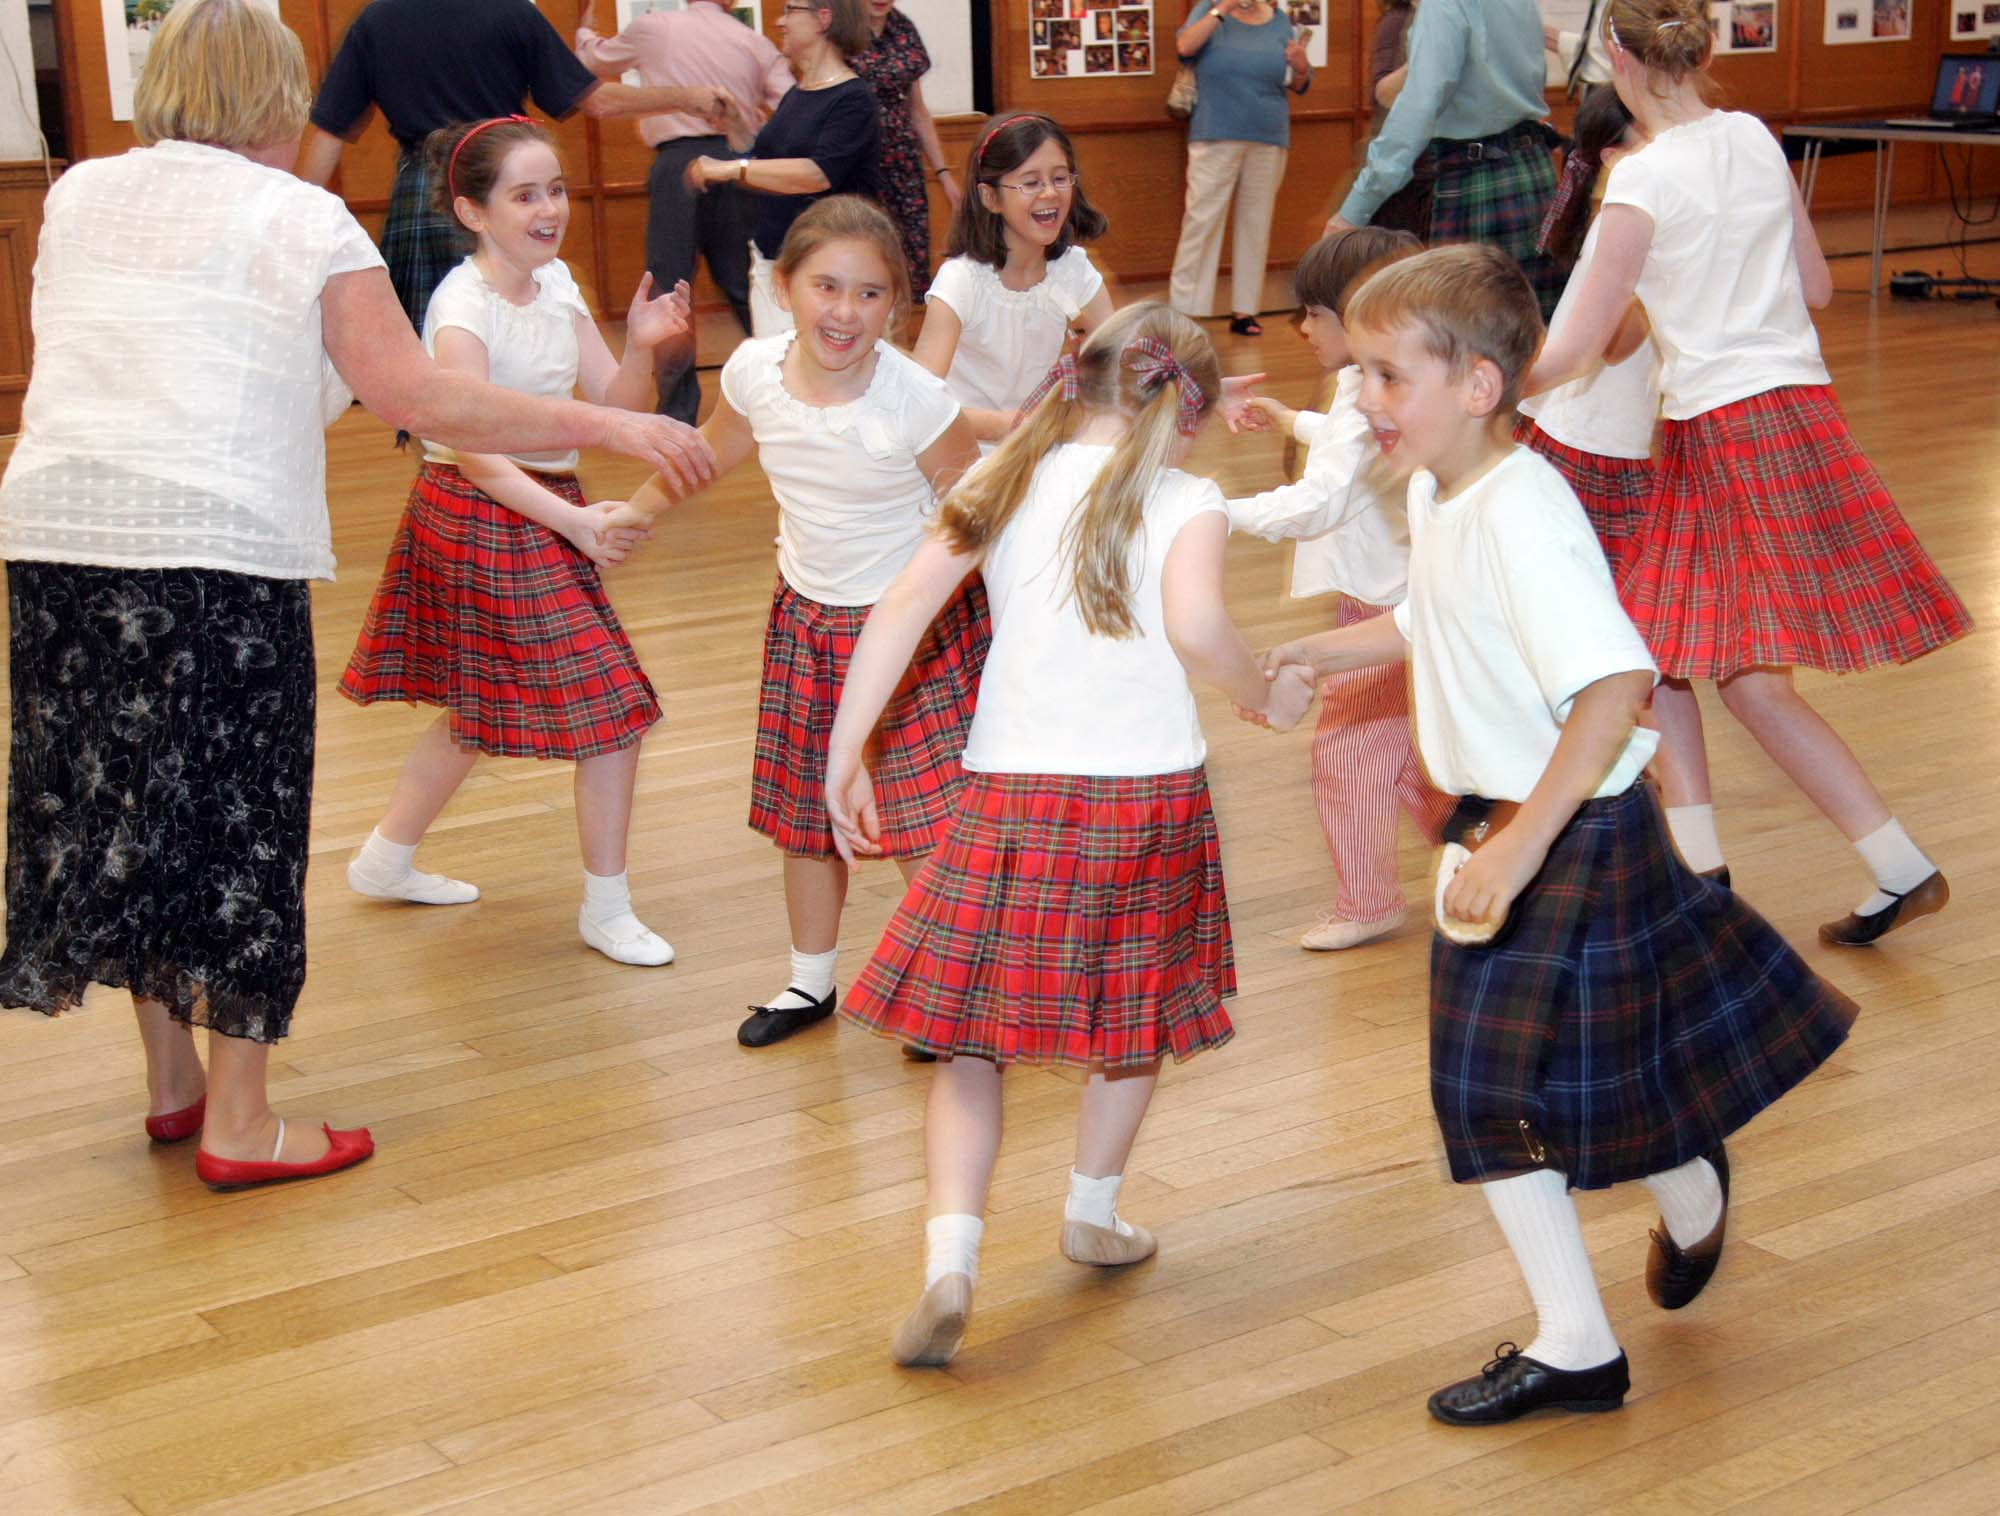 COPYRIGHT PICTURE : PICTURE PARTNERSHIP. (912105-G) PICTURE BY : Andrew Dunsmore.17-09-08 GENERAL INFO: Scottish Country Dancing at St Columba's Church Hall, Pont Street, London.